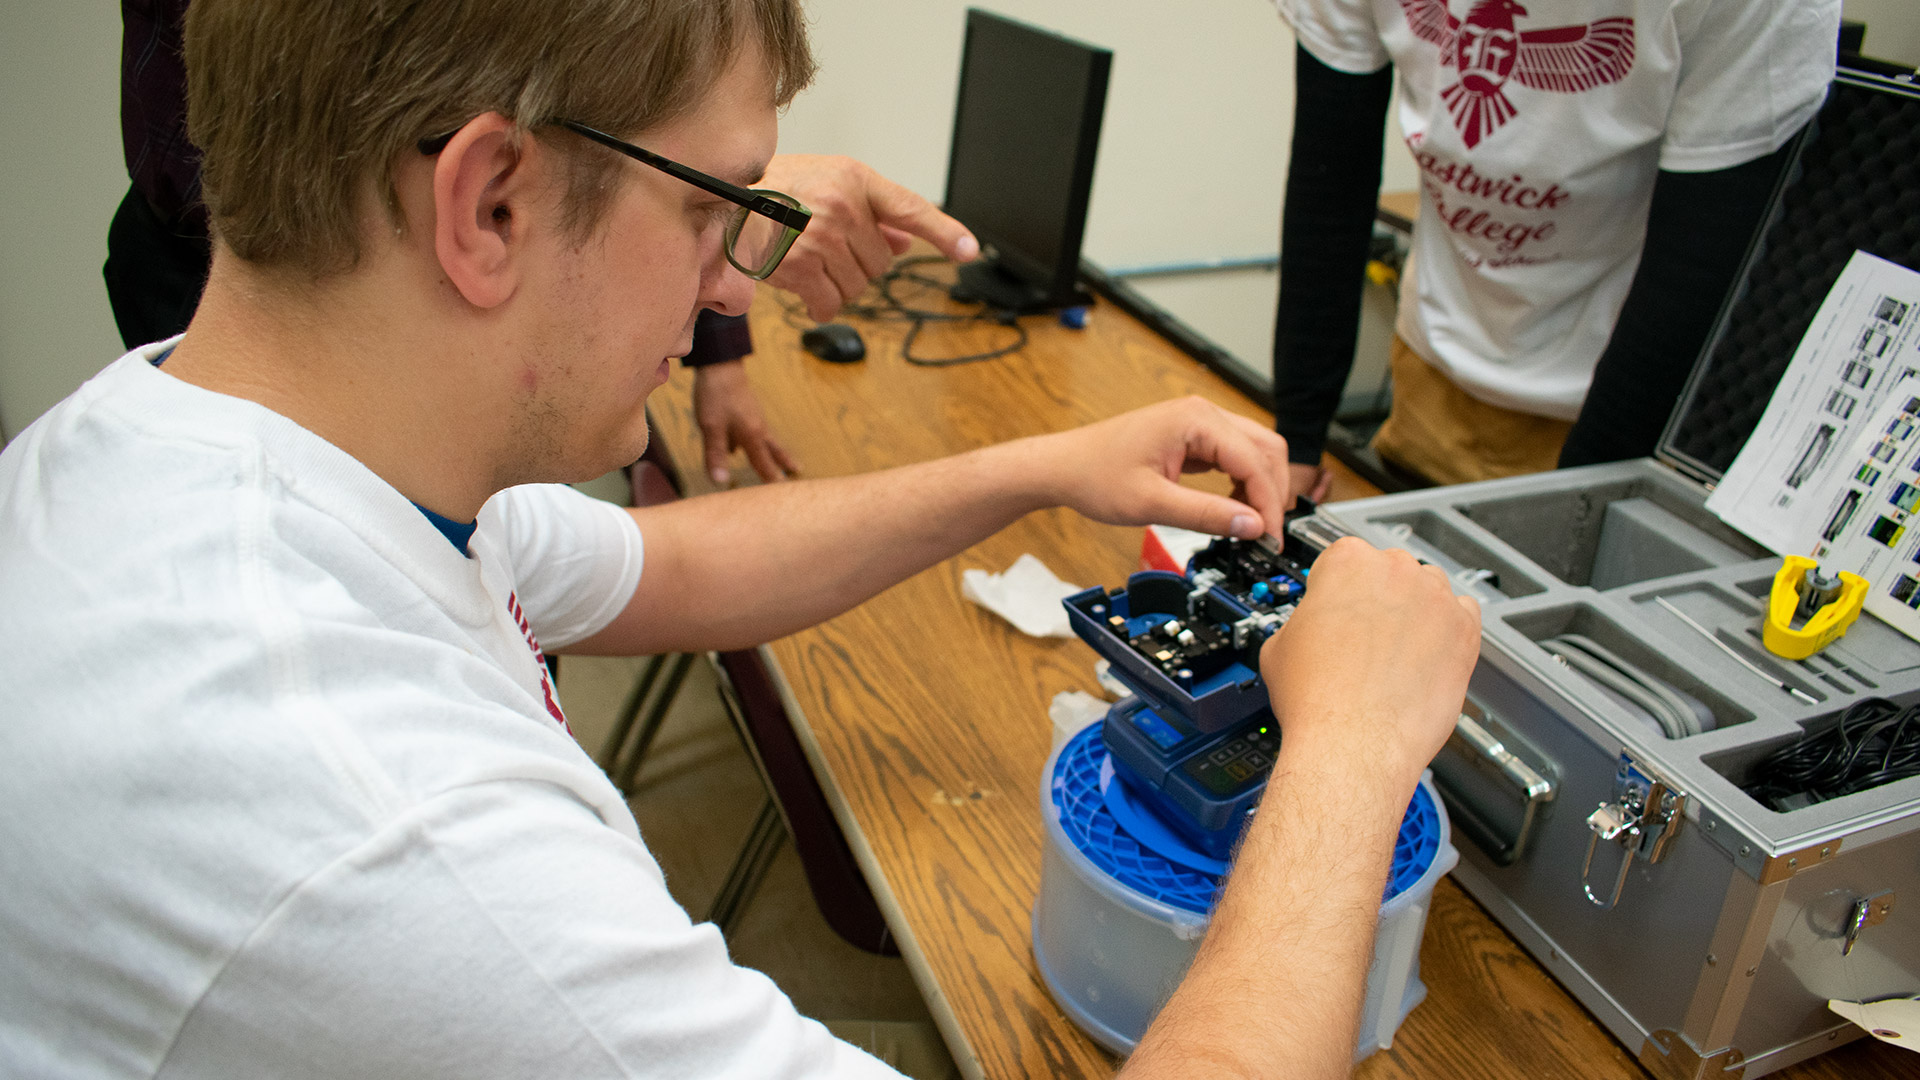 IT student practices wiring device